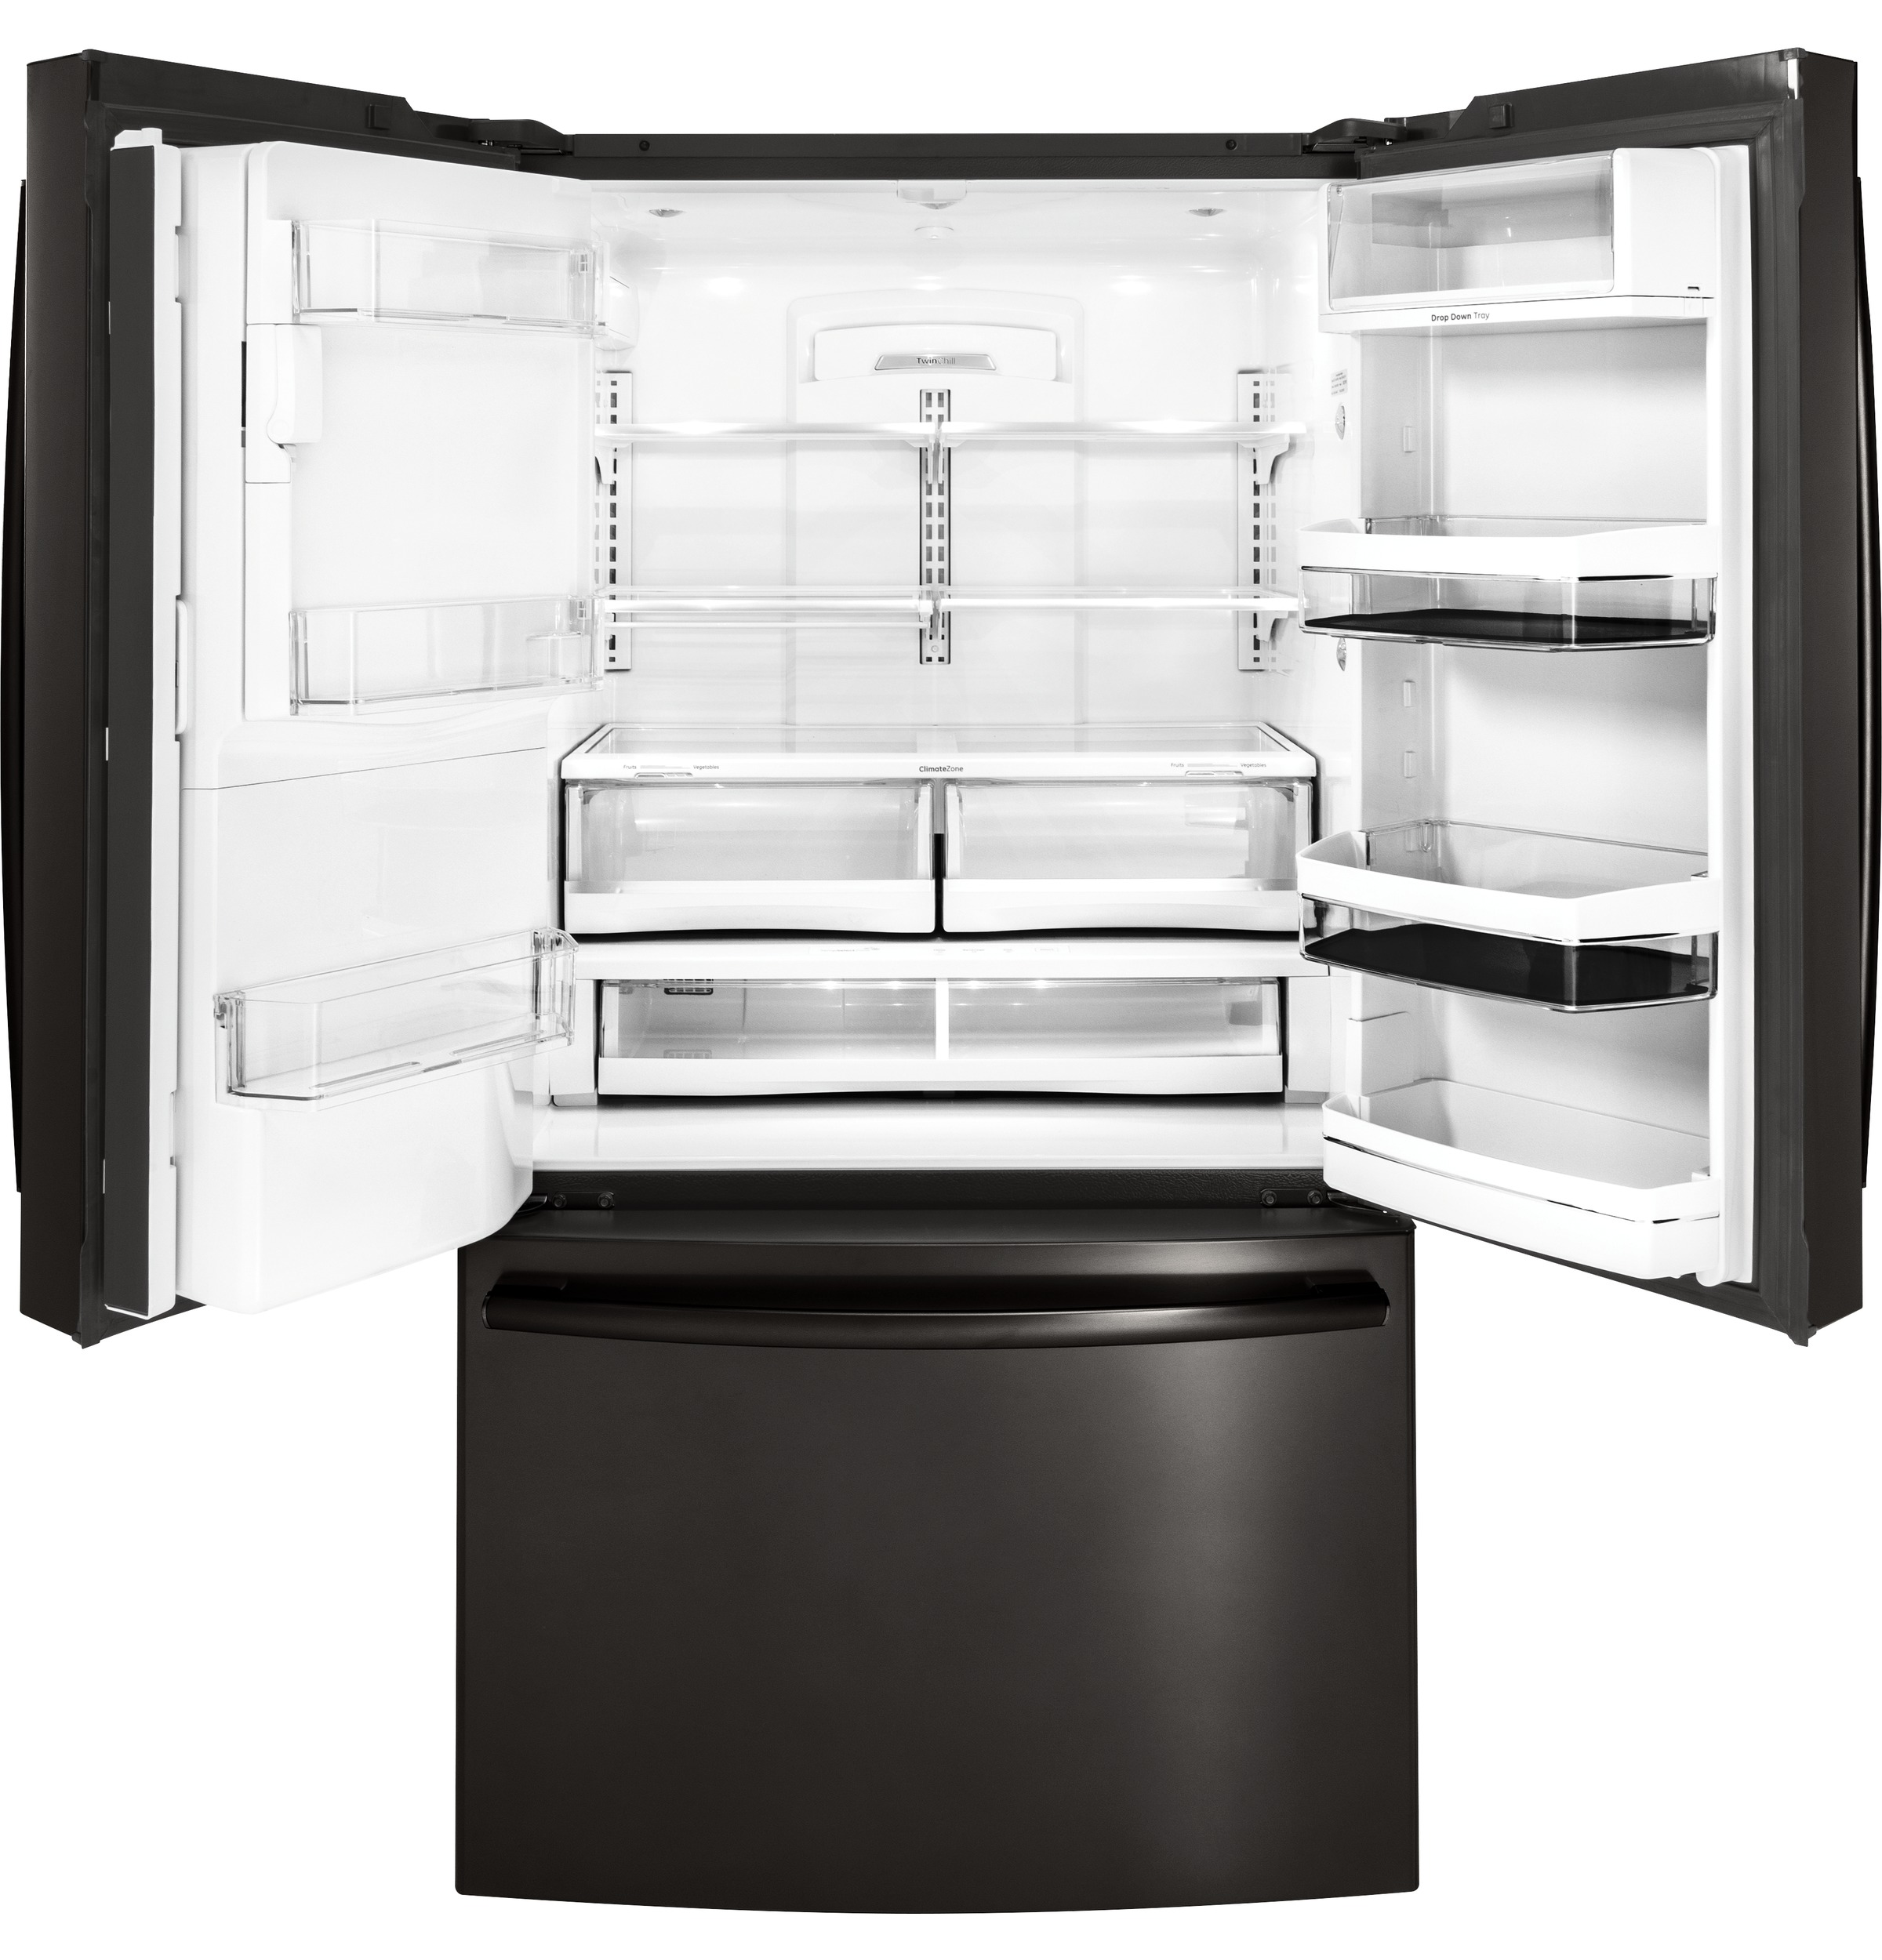 Model: PYE22PBLTS   GE Profile™ Series ENERGY STAR® 22.2 Cu. Ft. Counter-Depth French-Door Refrigerator with Keurig® K-Cup® Brewing System